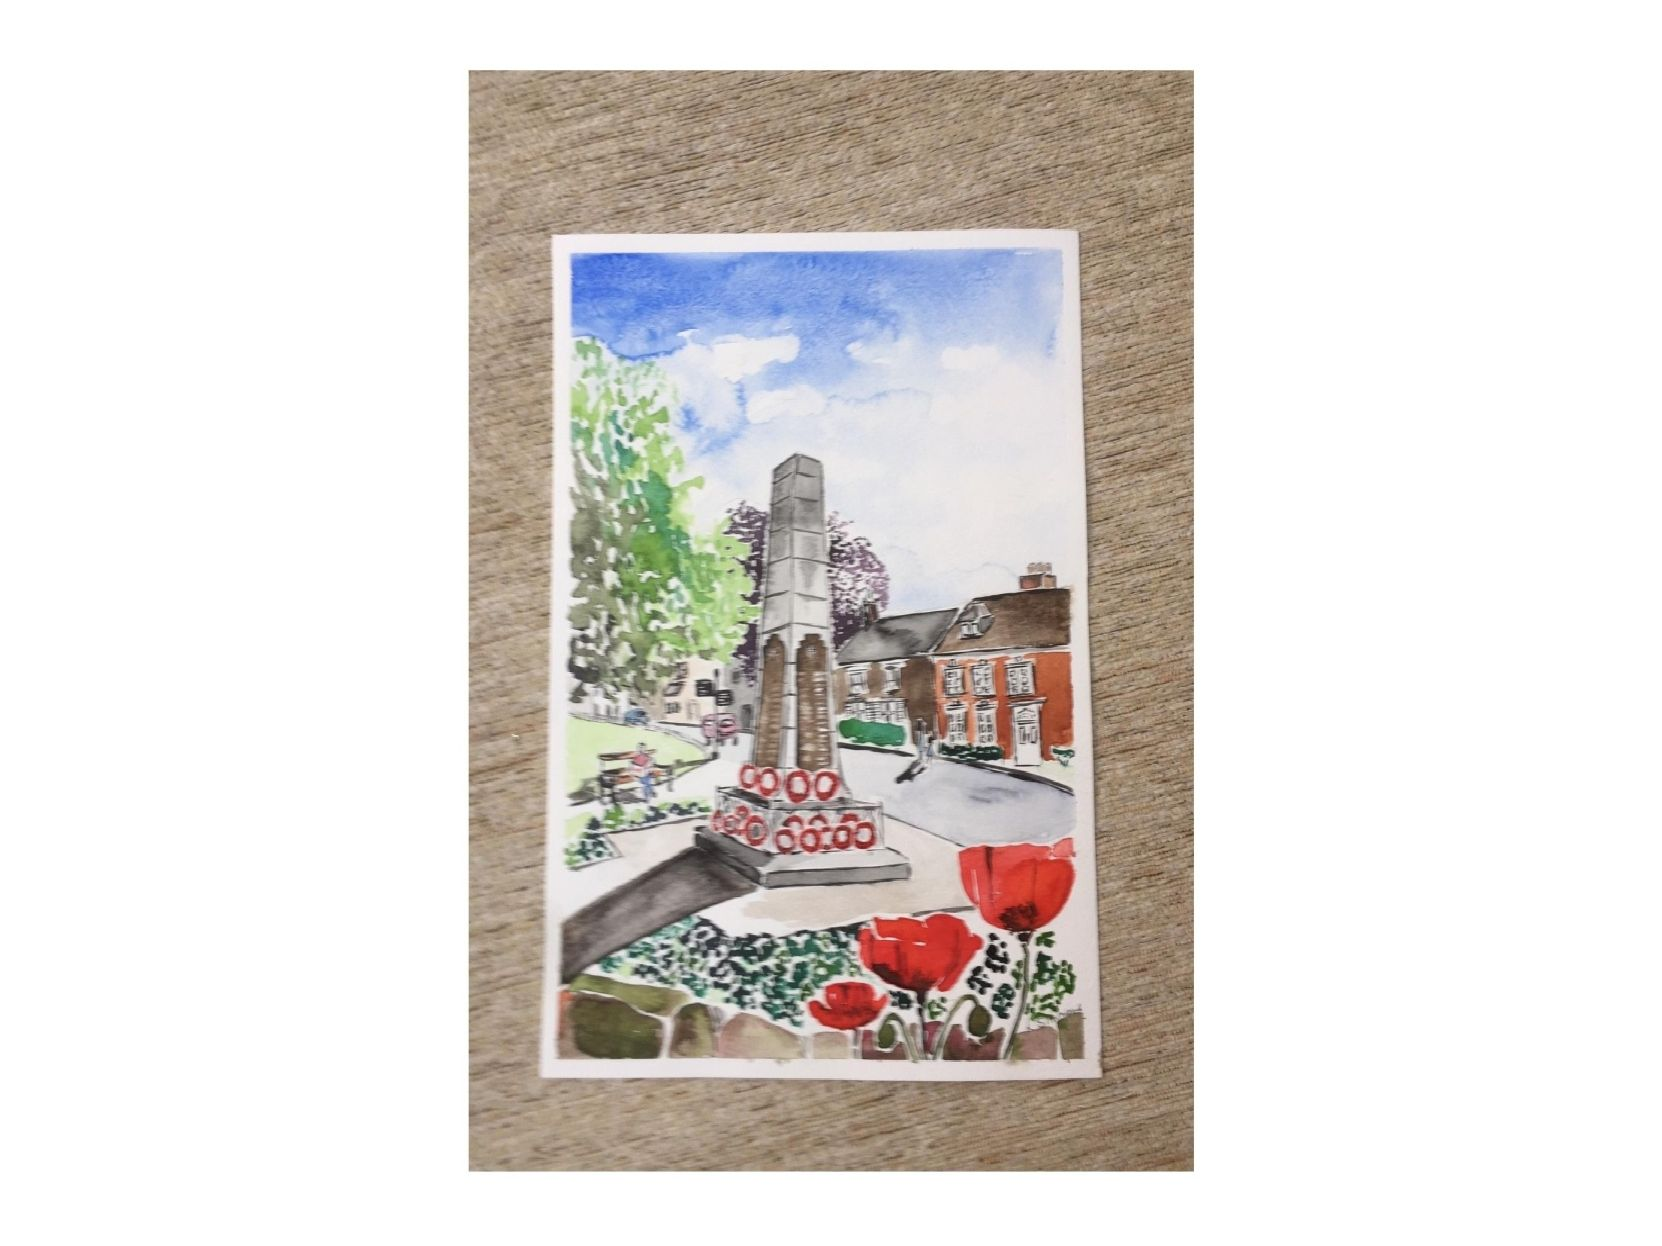 Painting of the Kenilworth War Memorial at Abbey Hill